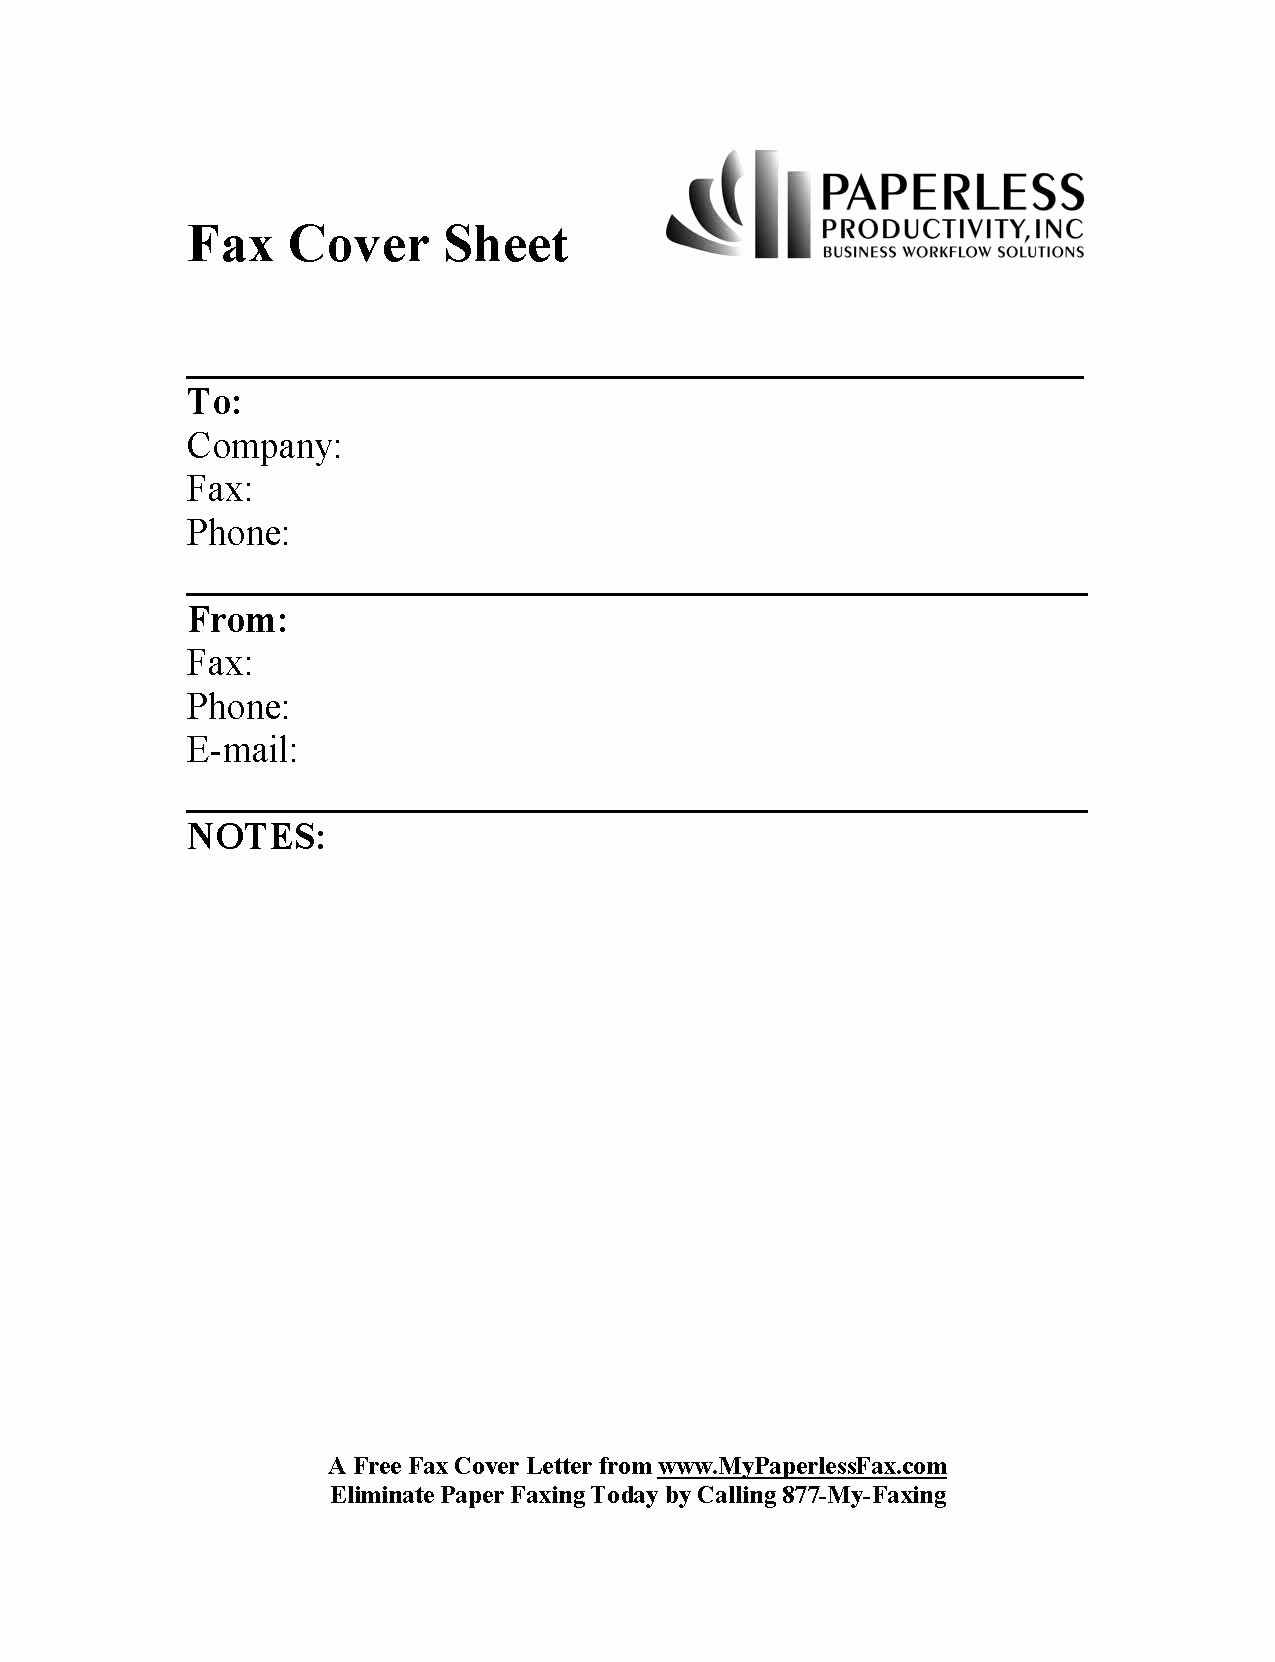 Cover Sheet for A Fax Luxury Microsoft Fice Fax Template Portablegasgrillweber